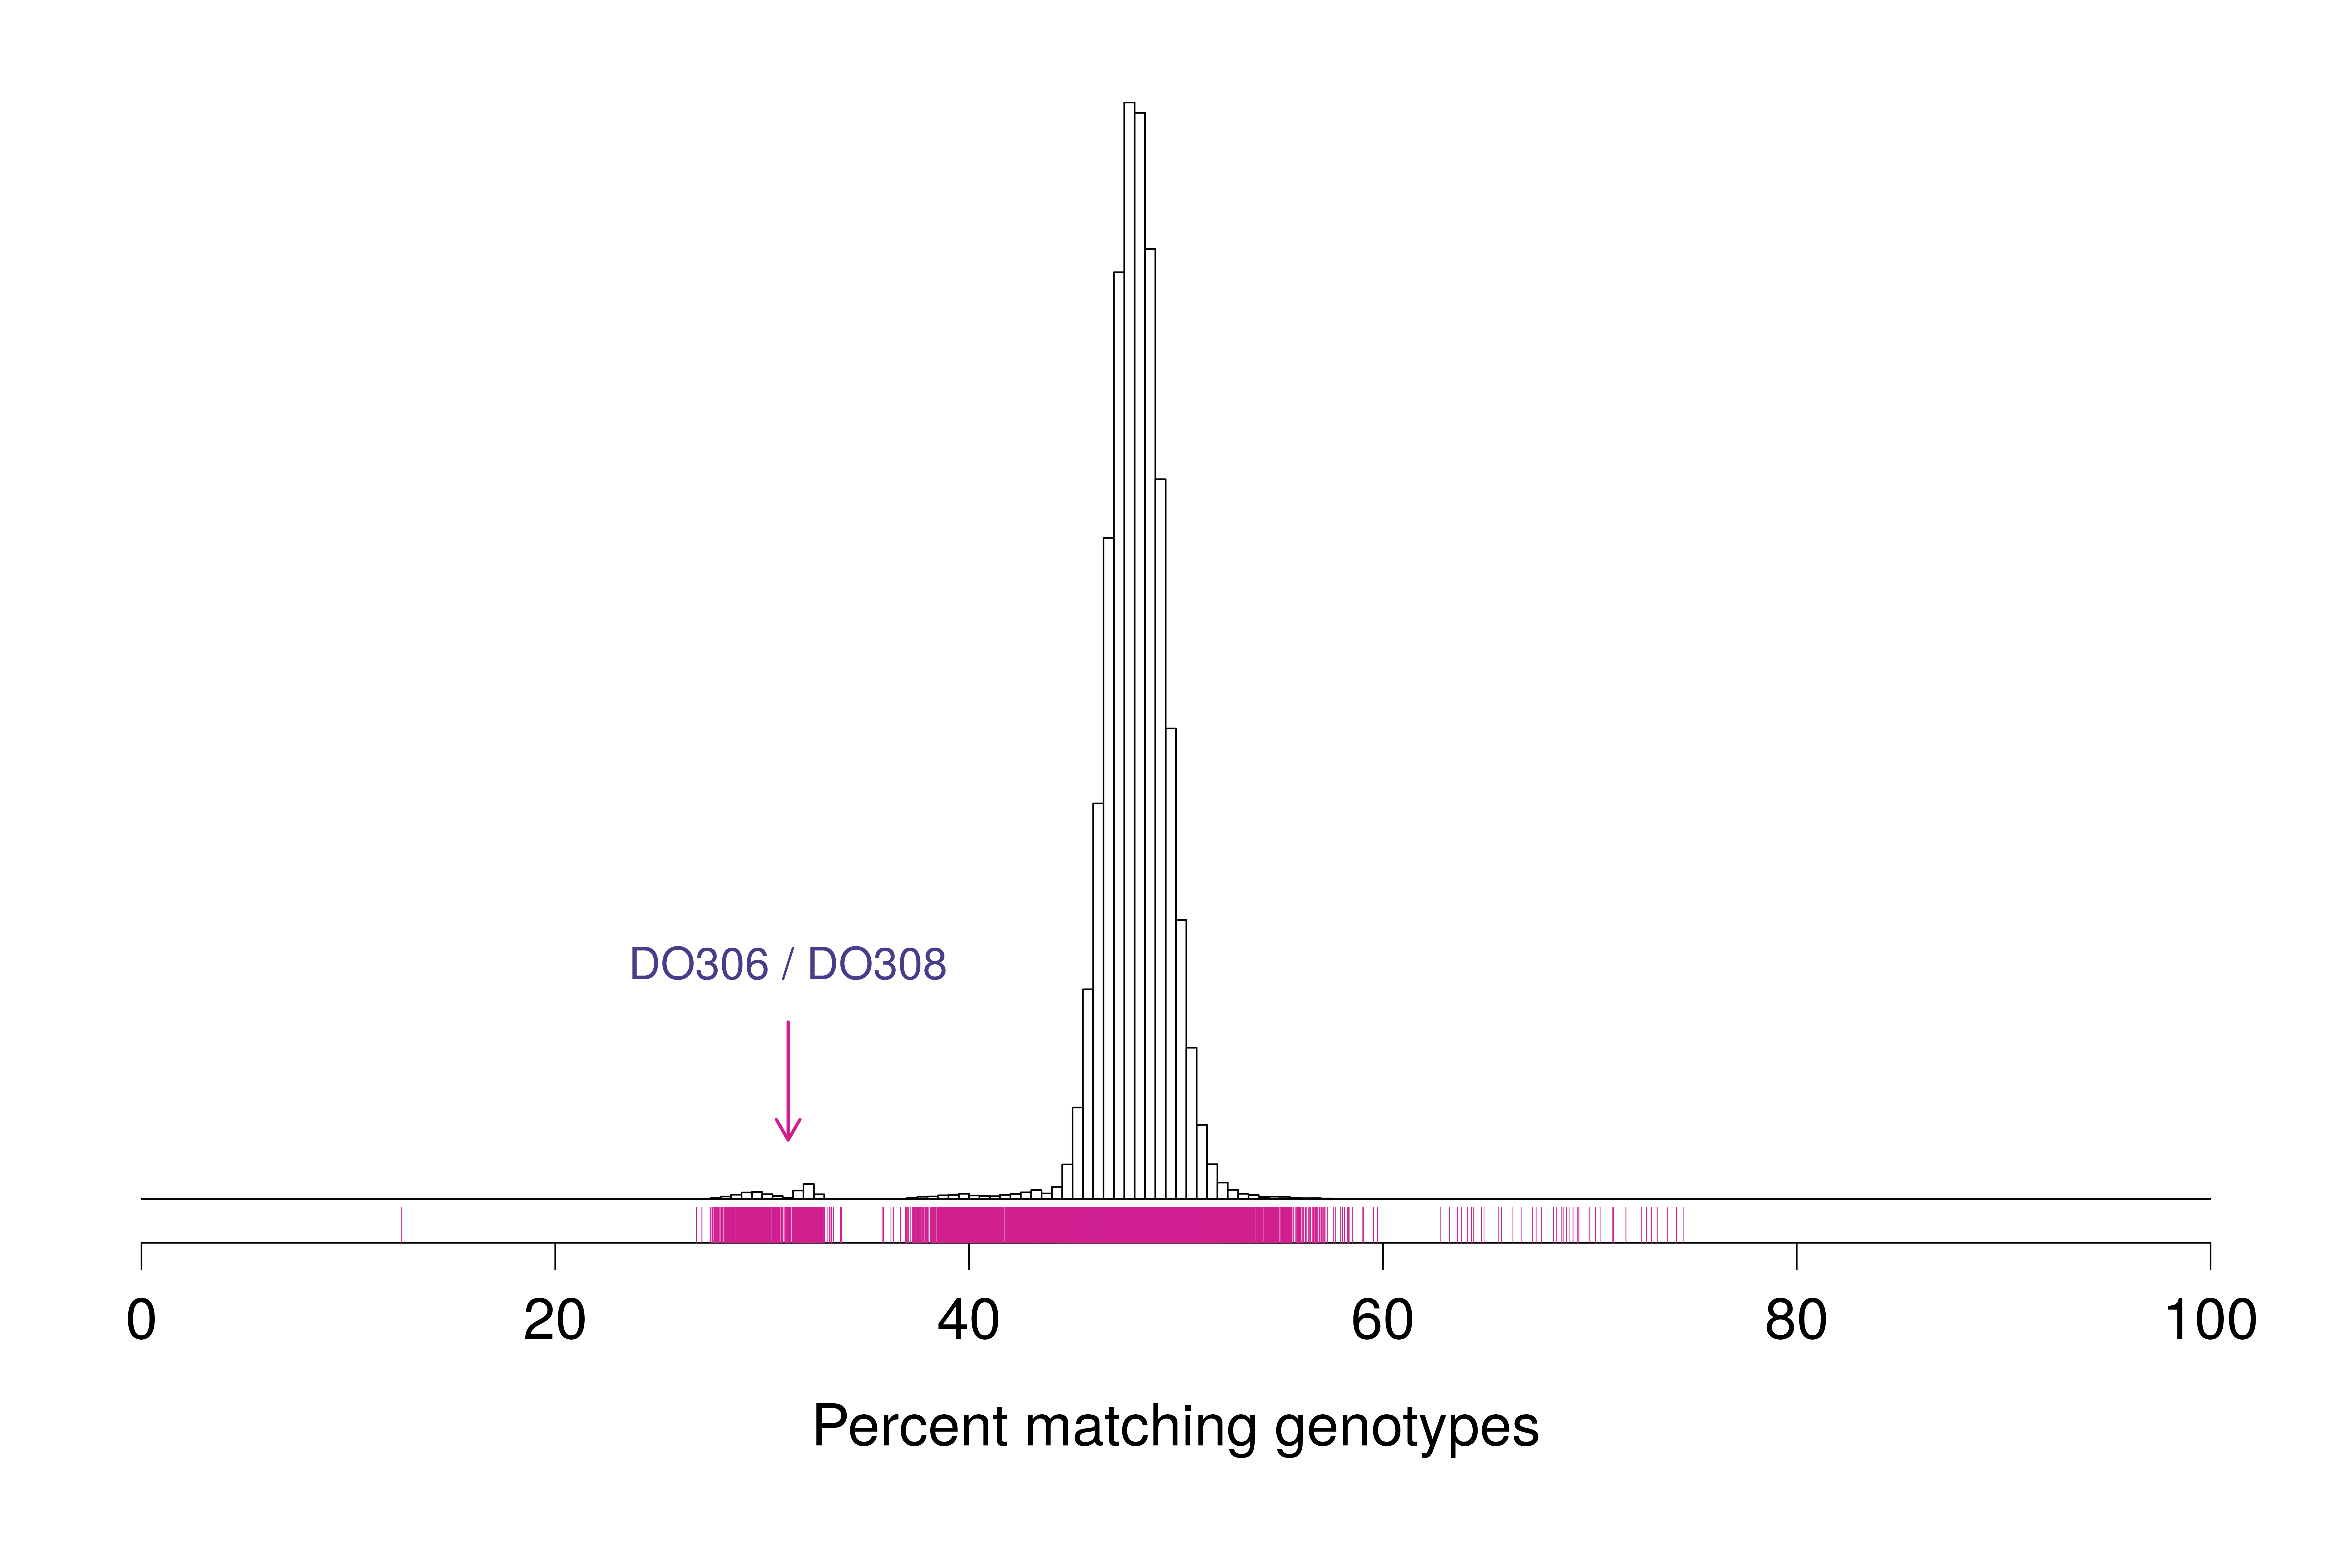 Cleaning Genotype Data For Diversity Outbred Mice Traeger Schematic Percent Matching Genotypes Between Pairs